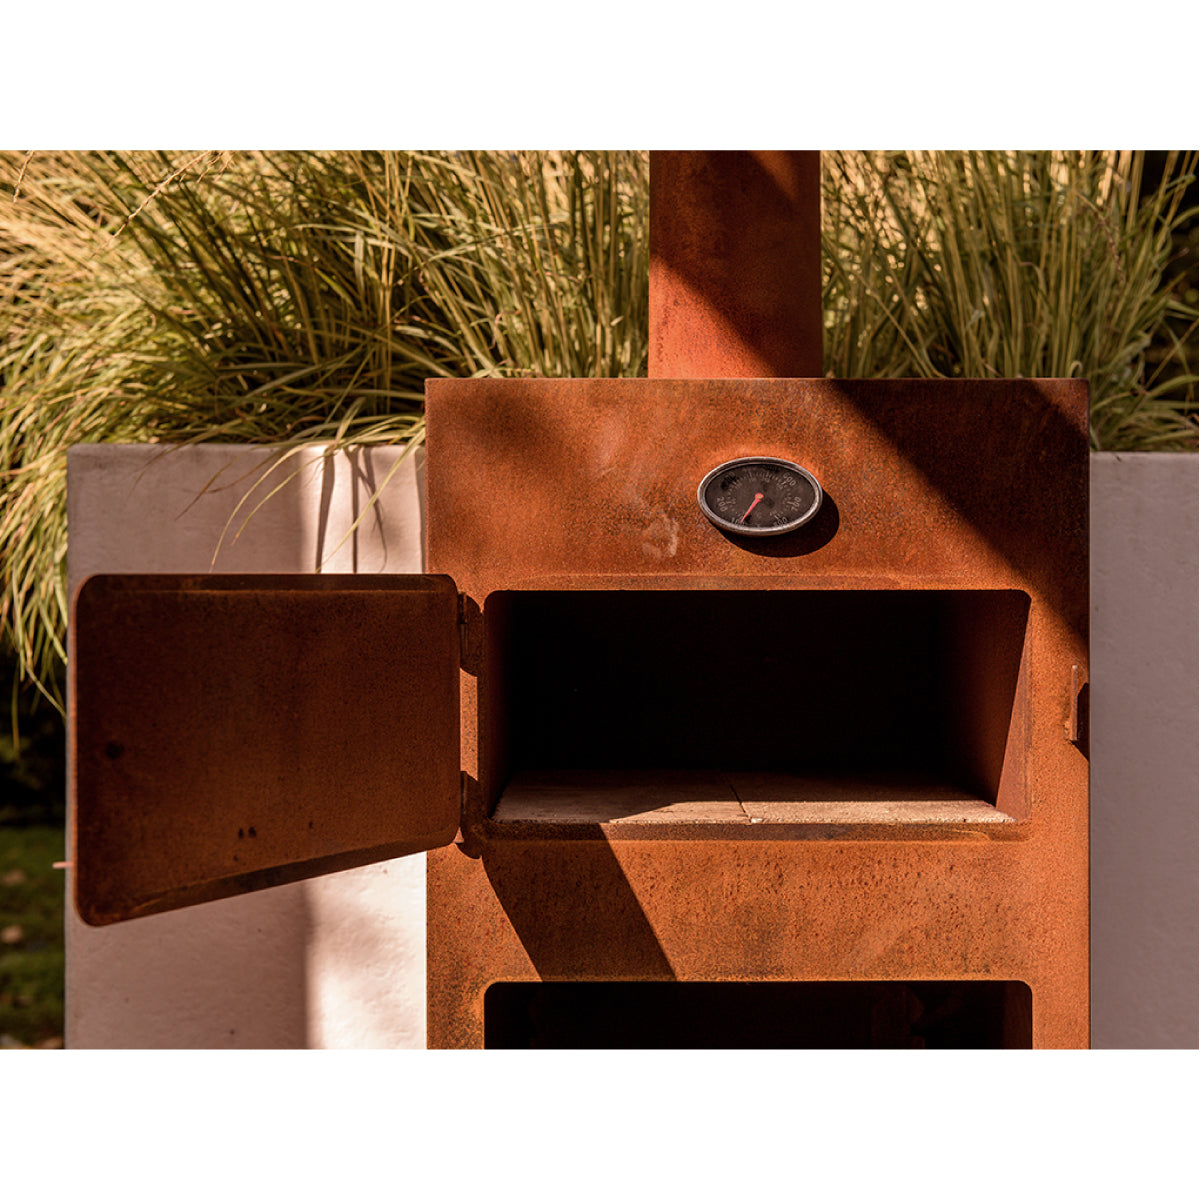 Gerard outdoor oven